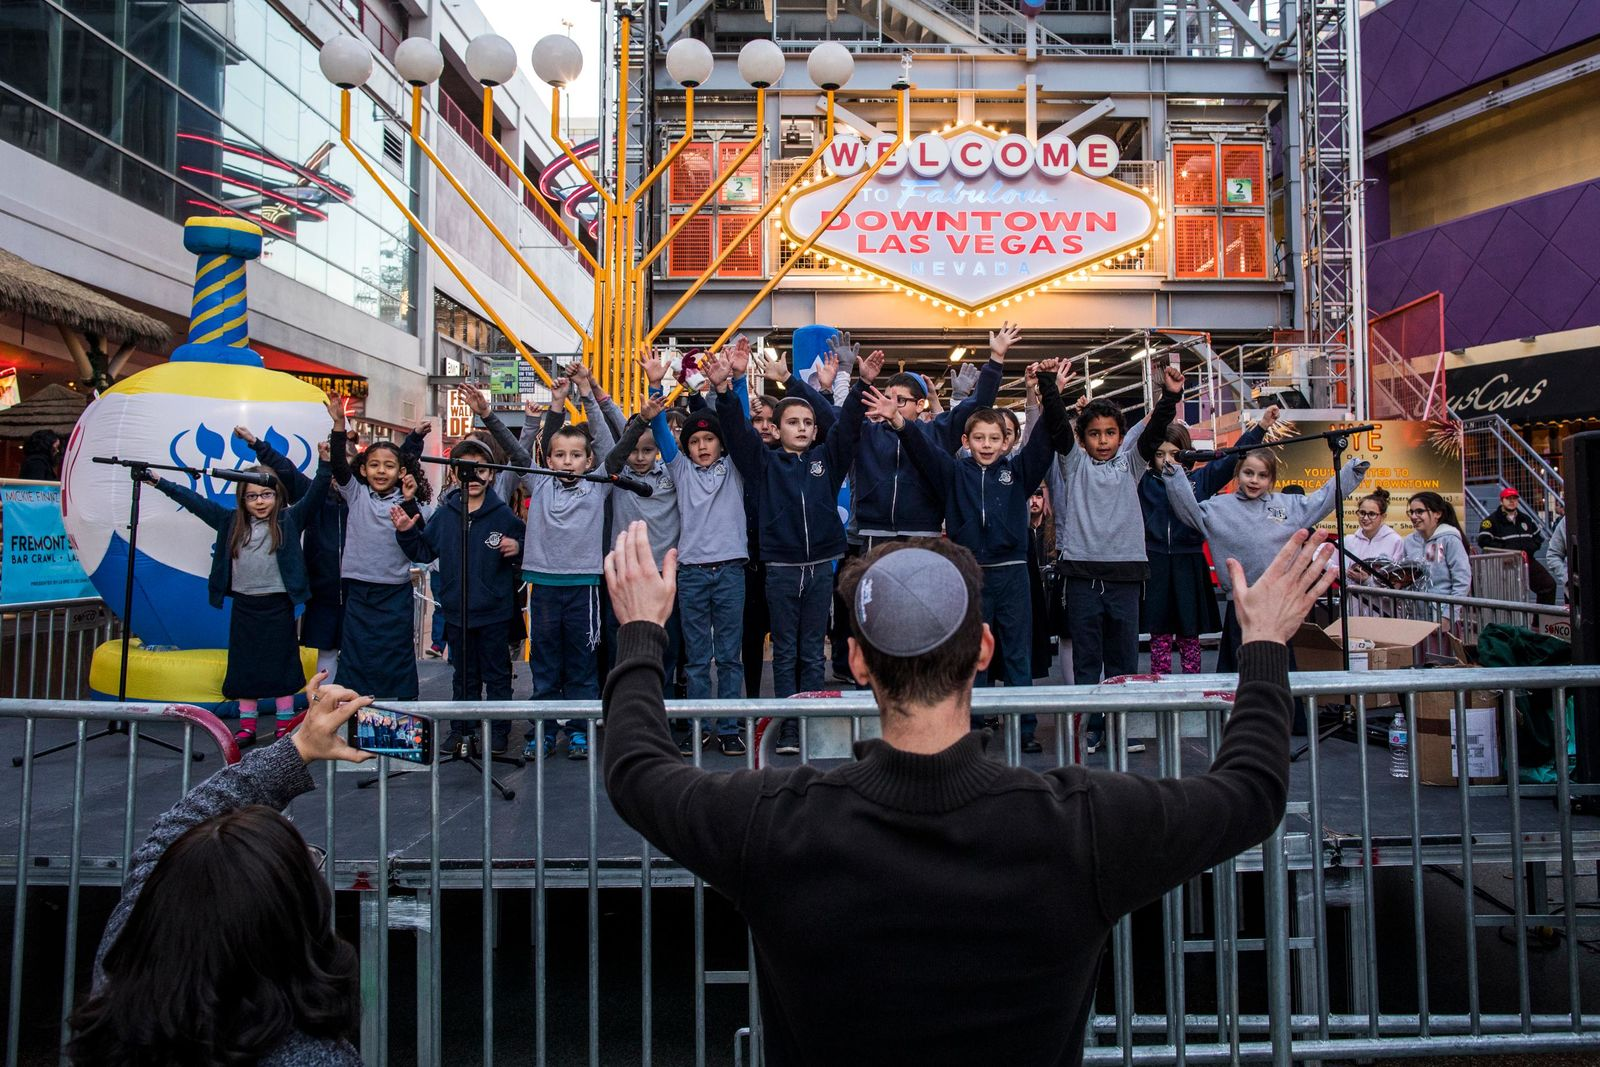 The Desert Torah Academy Children?s Choir sings before the lighting of the Grand Menorah in downtown Las Vegas on Sunday, Dec. 2. The ceremony featured a 20-foot Grand Menorah, with ceremonies led by Rabbi Shea Harlig from Chabad of Southern Nevada. CREDIT: Joe Buglewicz/Las Vegas News Bureau